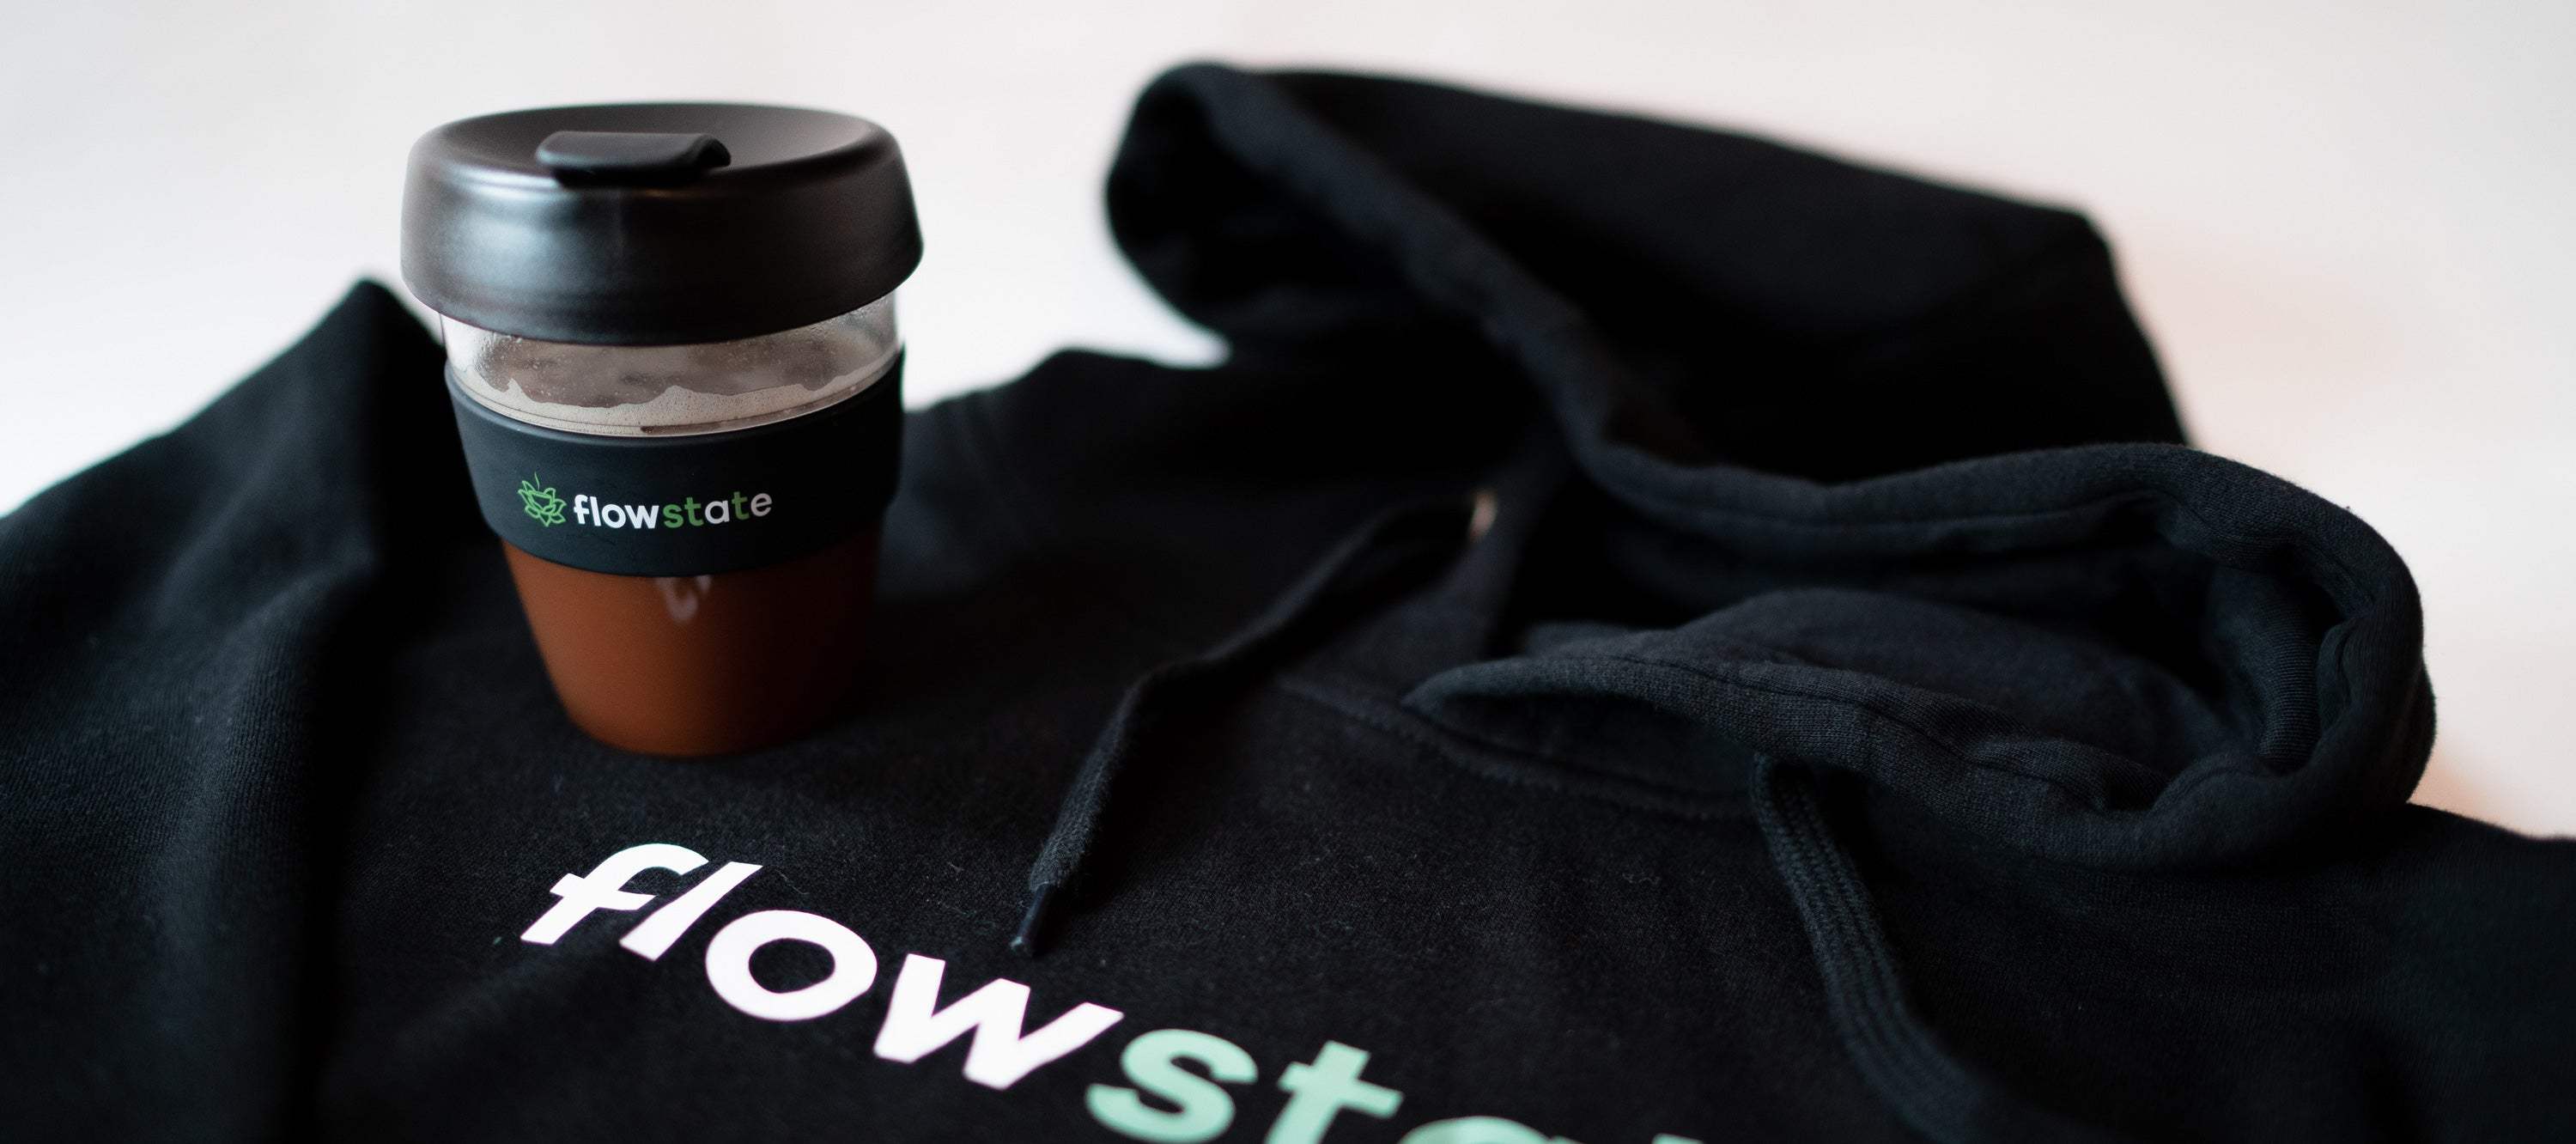 Flowstate Coffee Co Merchandise